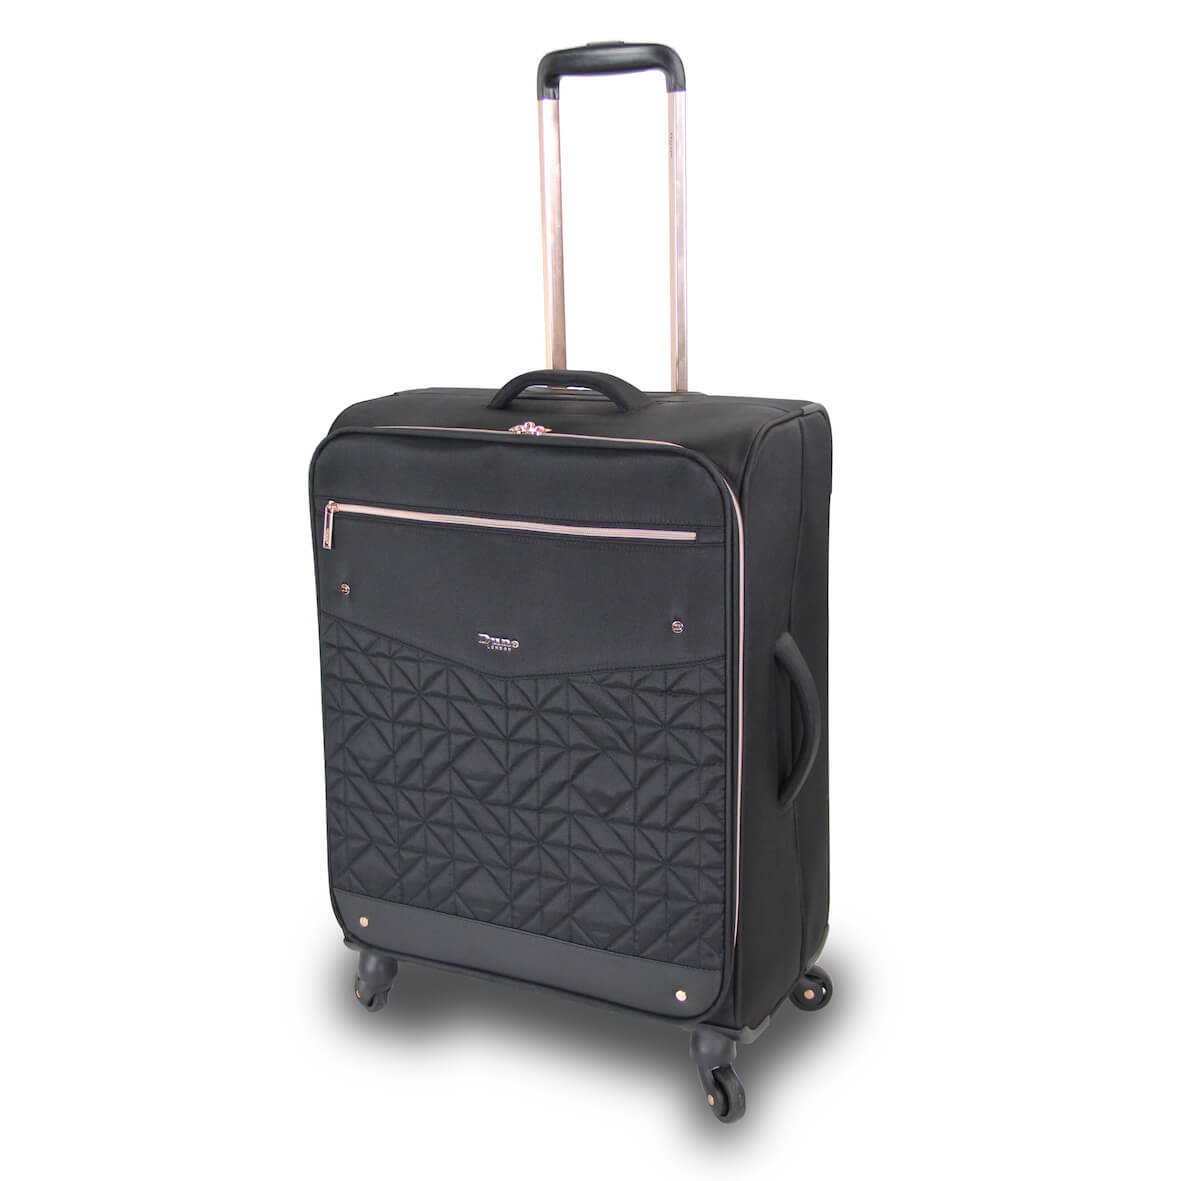 Dune London Tianna 66cm 4-Wheel Suitcase